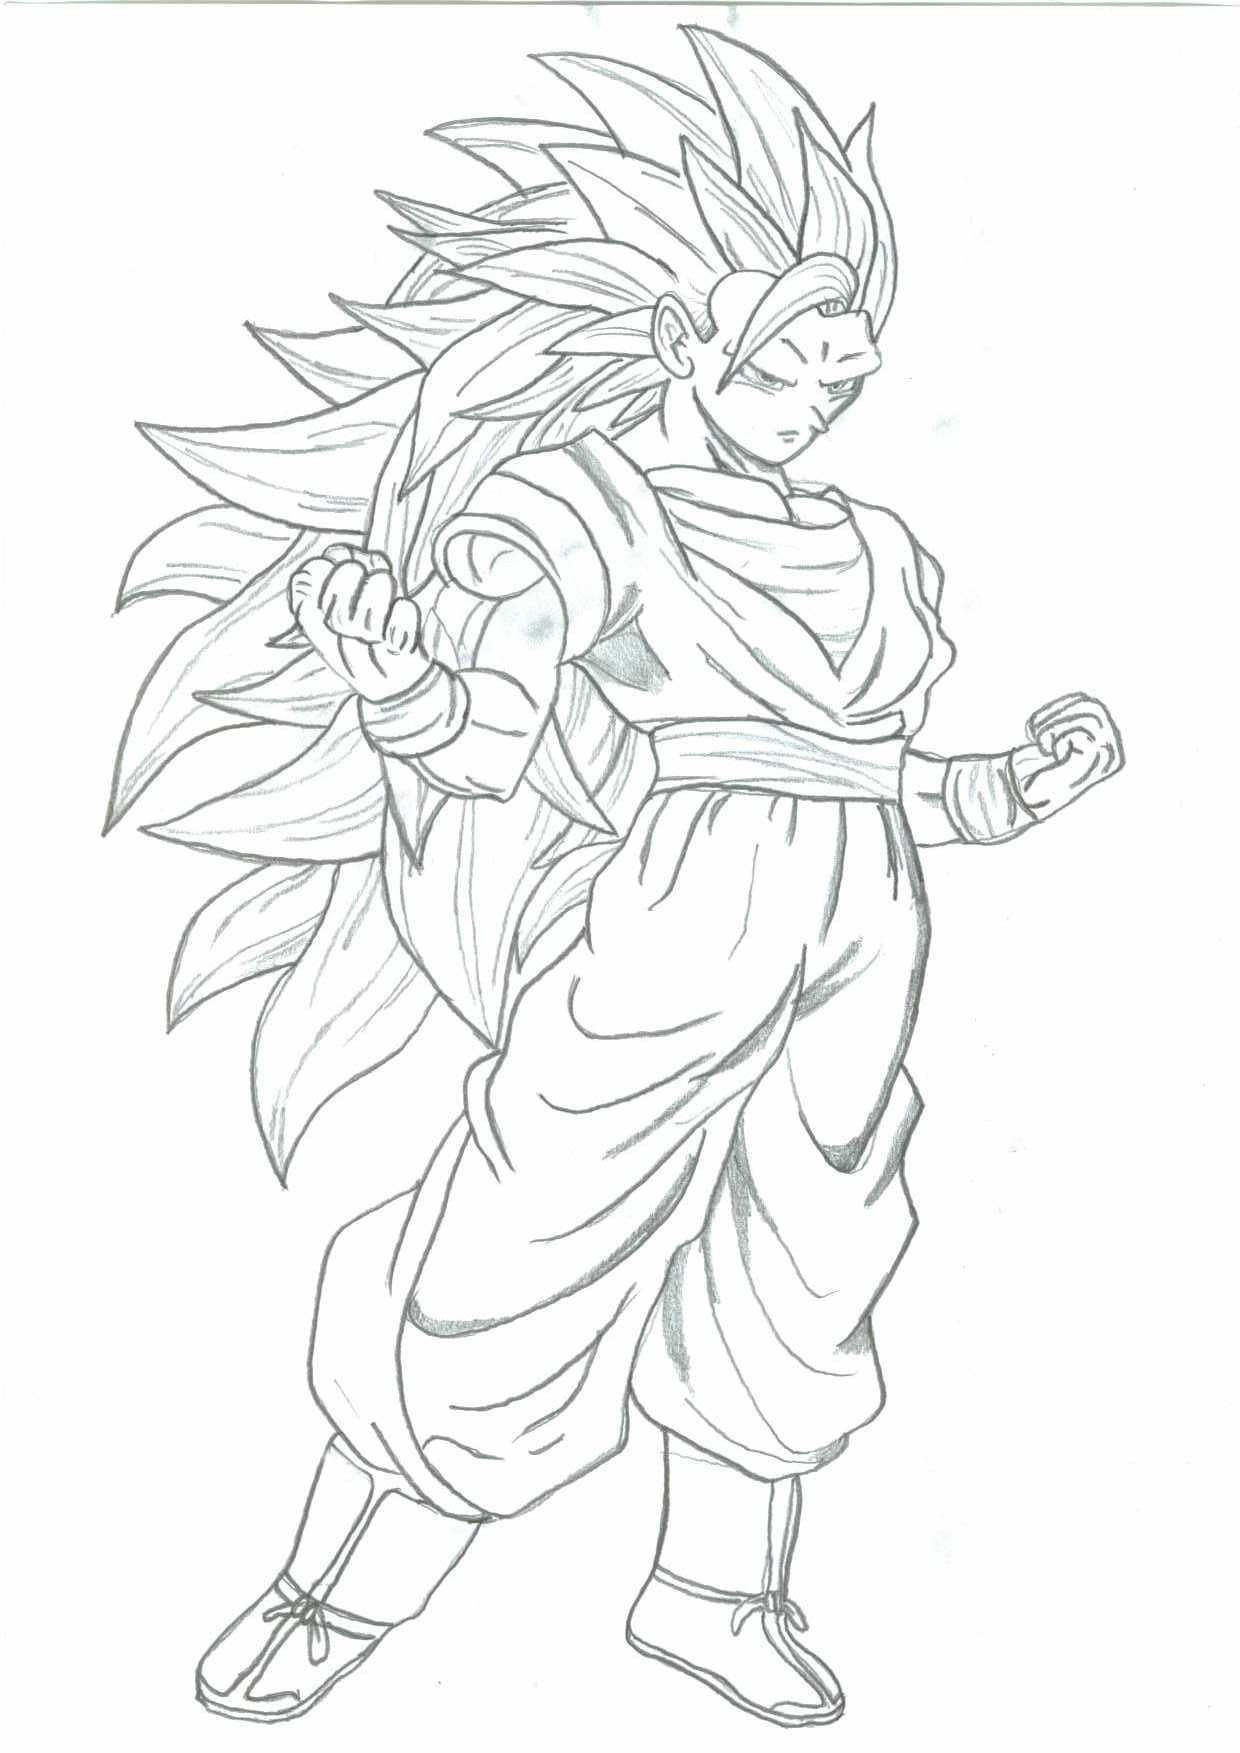 Gotenks super sainy 5 free coloring pages for Goku super saiyan 5 coloring pages